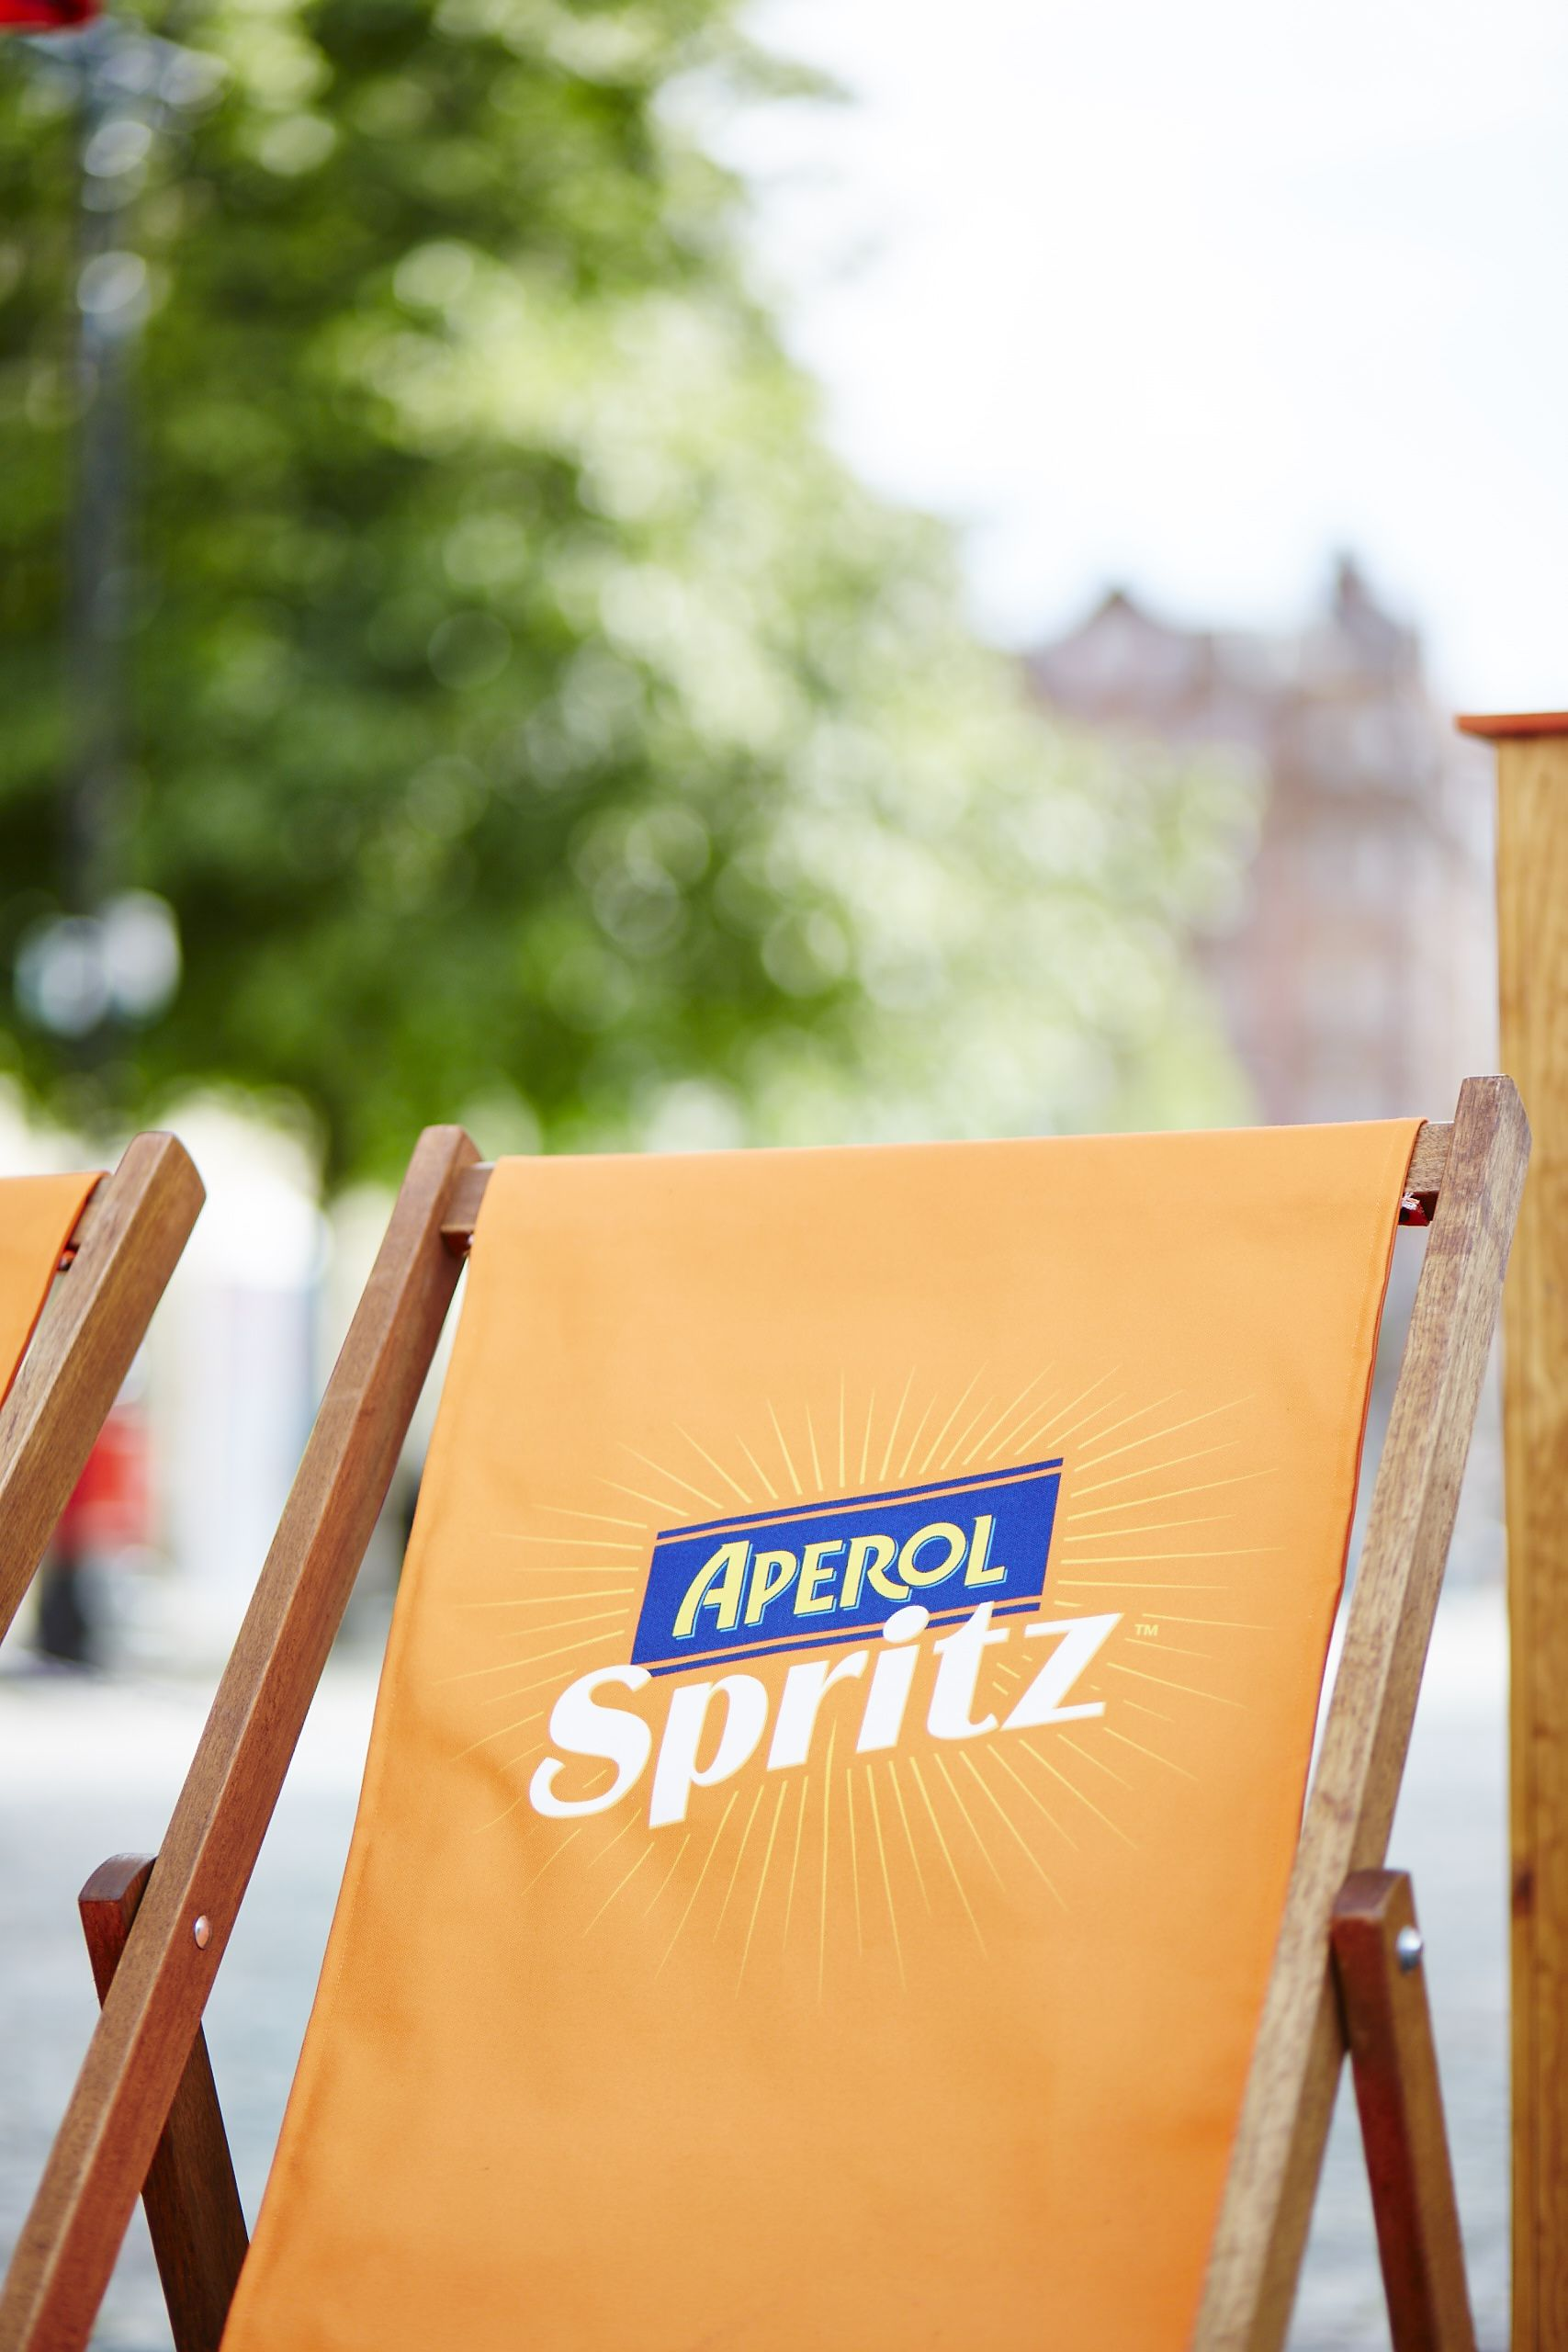 e of the best parts of an Aperol Spritz Social deck chairs